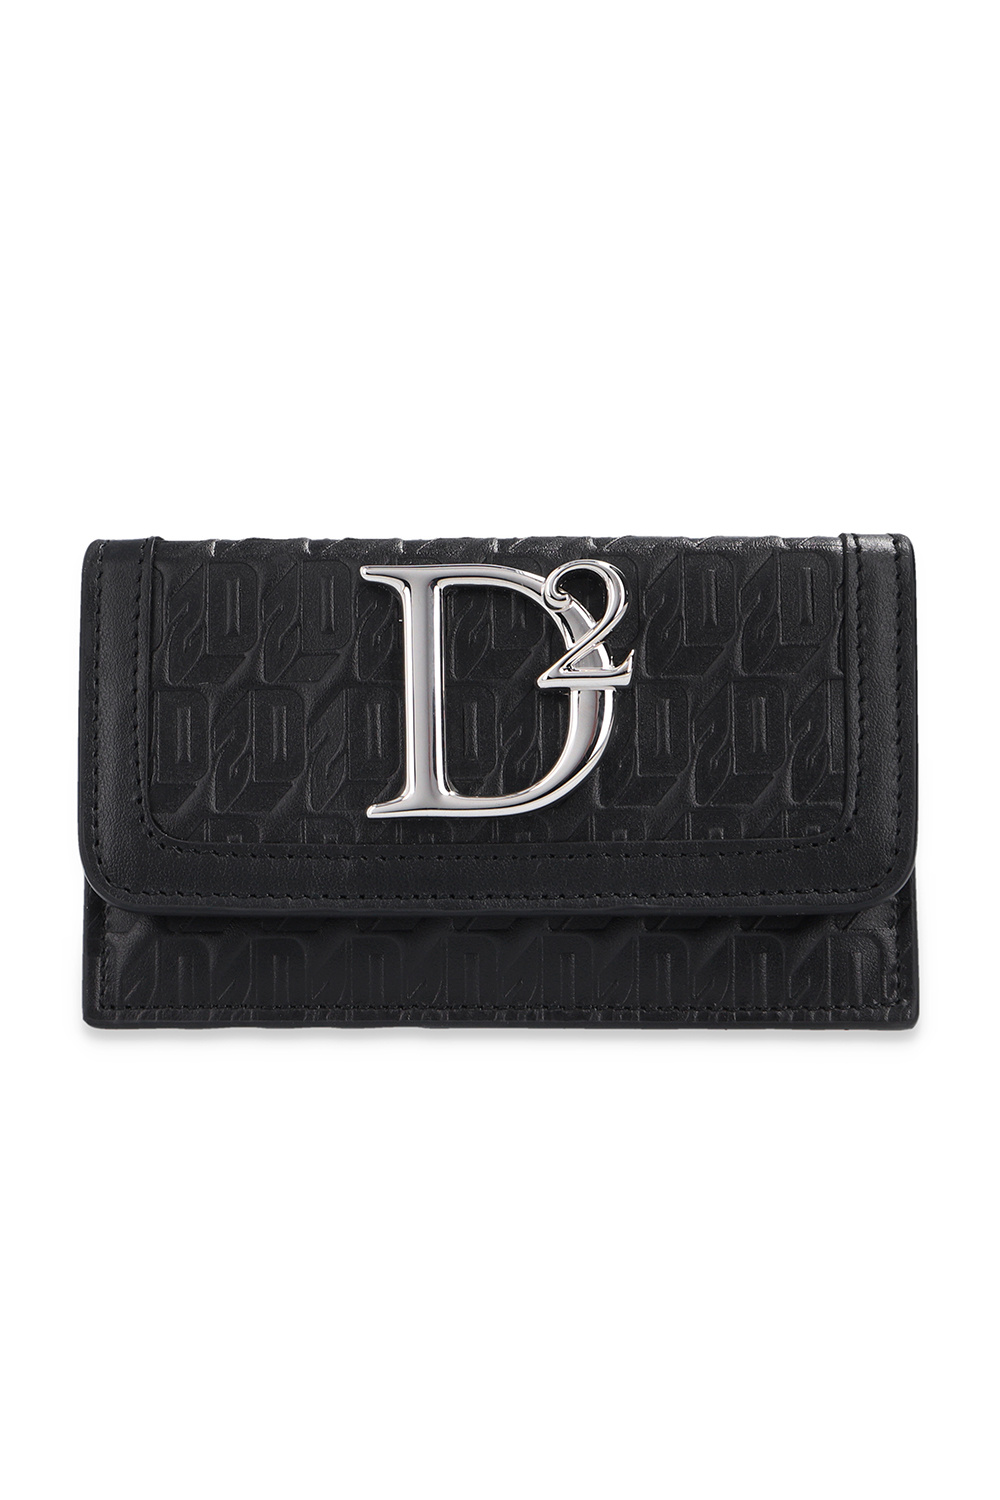 Dsquared2 Wallet with logo